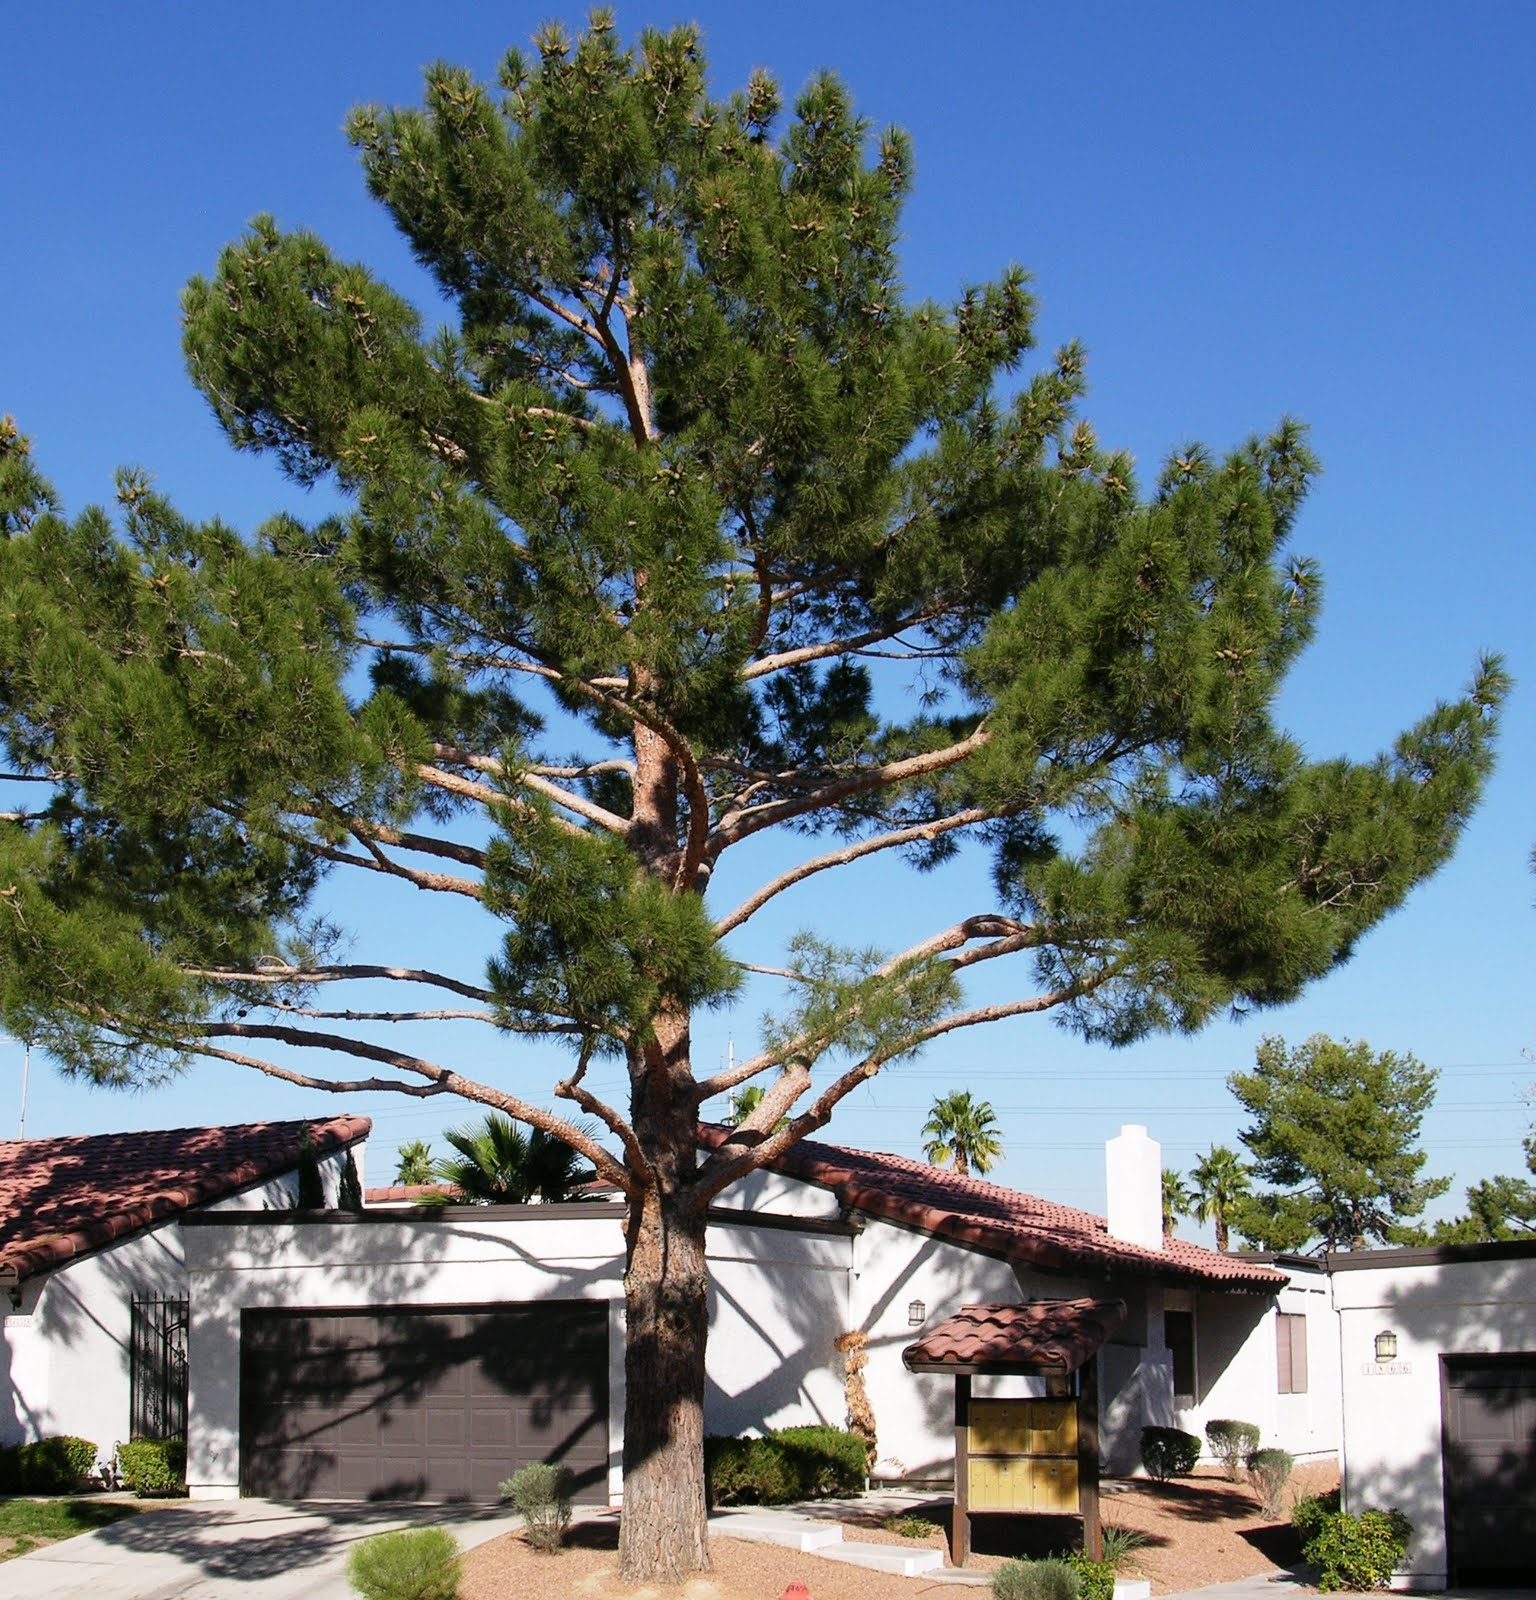 Xtremehorticulture Of The Desert Problem With Pruning Pine Trees So They Don T Over